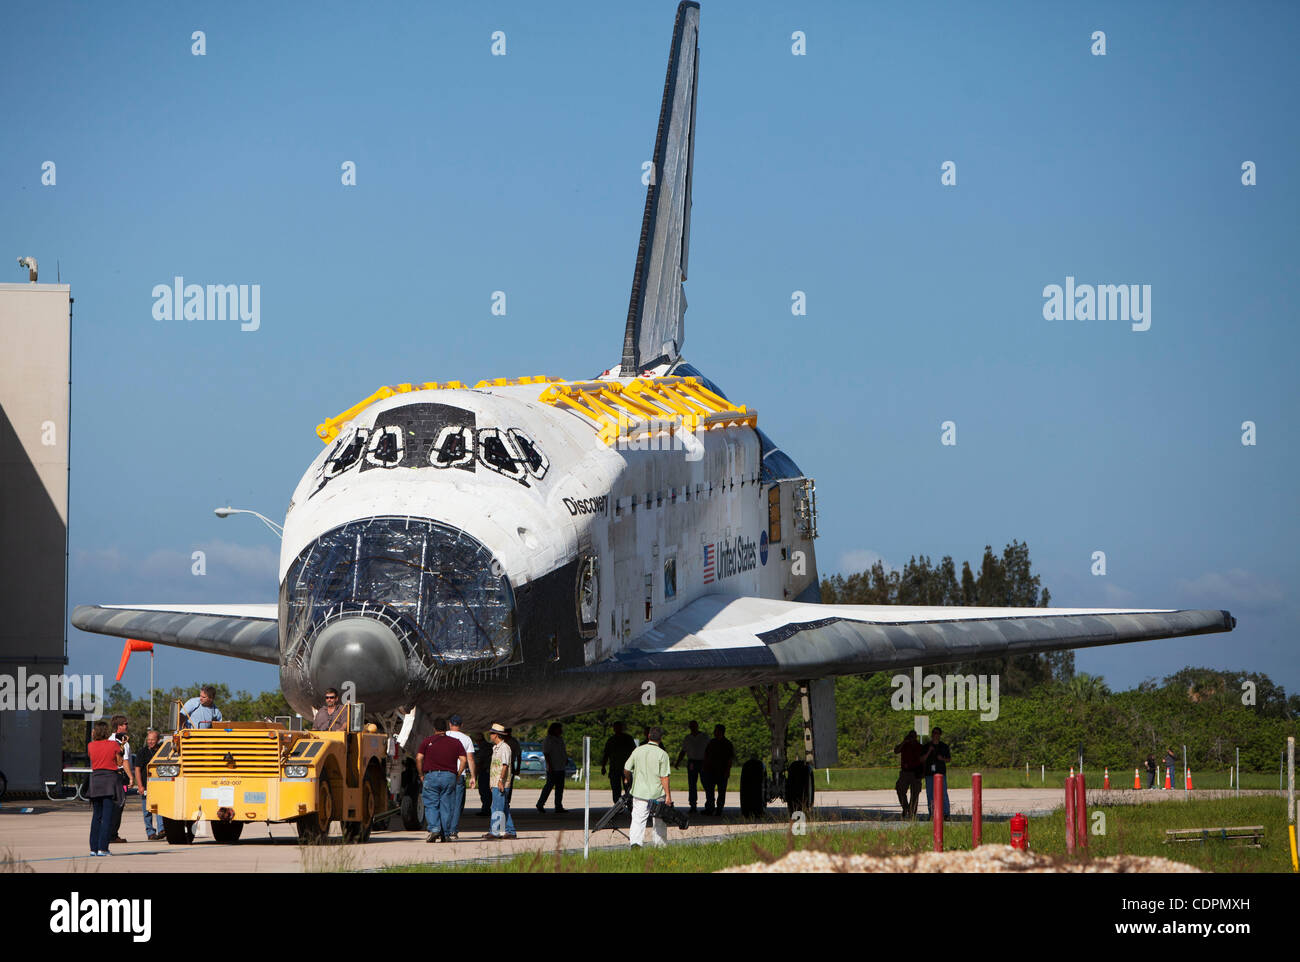 florida space shuttle - photo #40